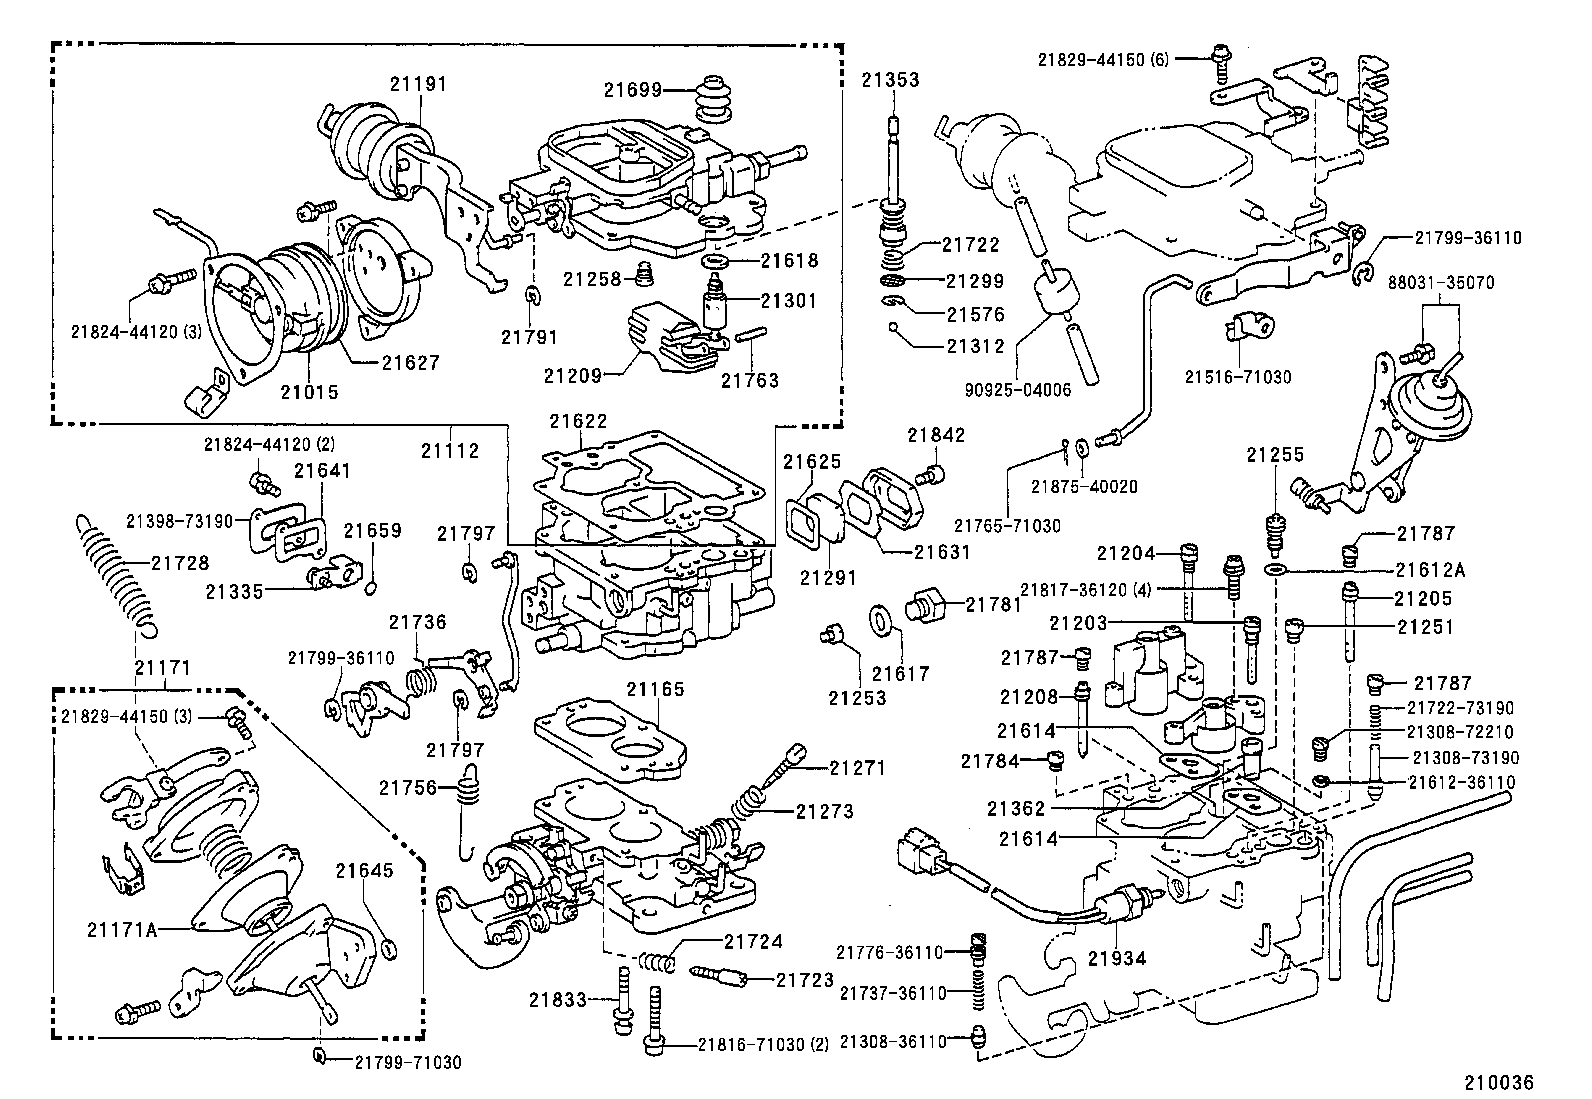 Diagram Of Toyota Parts. Toyota. Auto Parts Catalog And